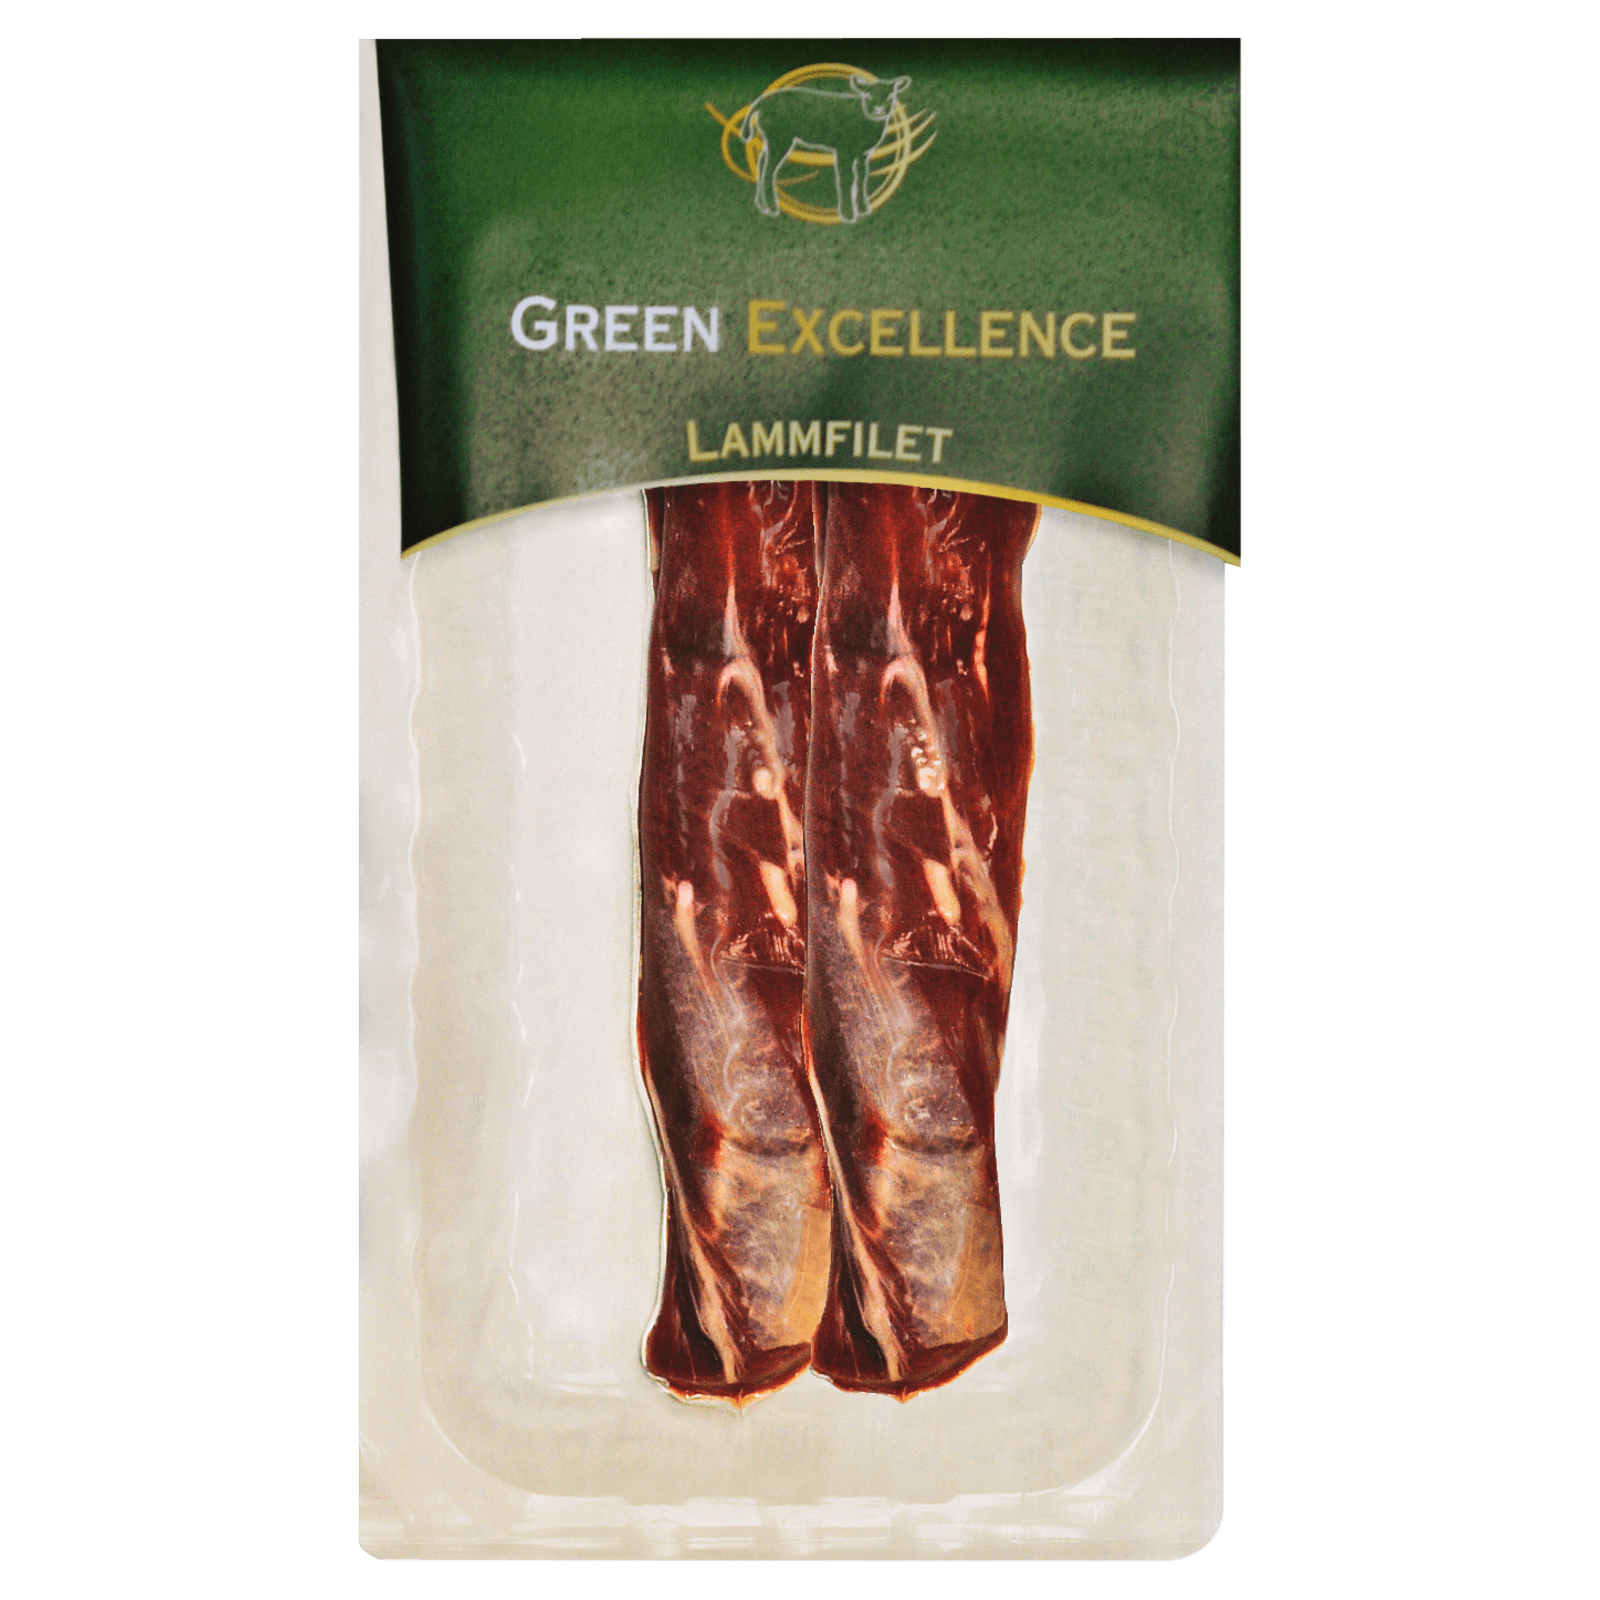 Green Excellence Lamm Filet ca. 200g